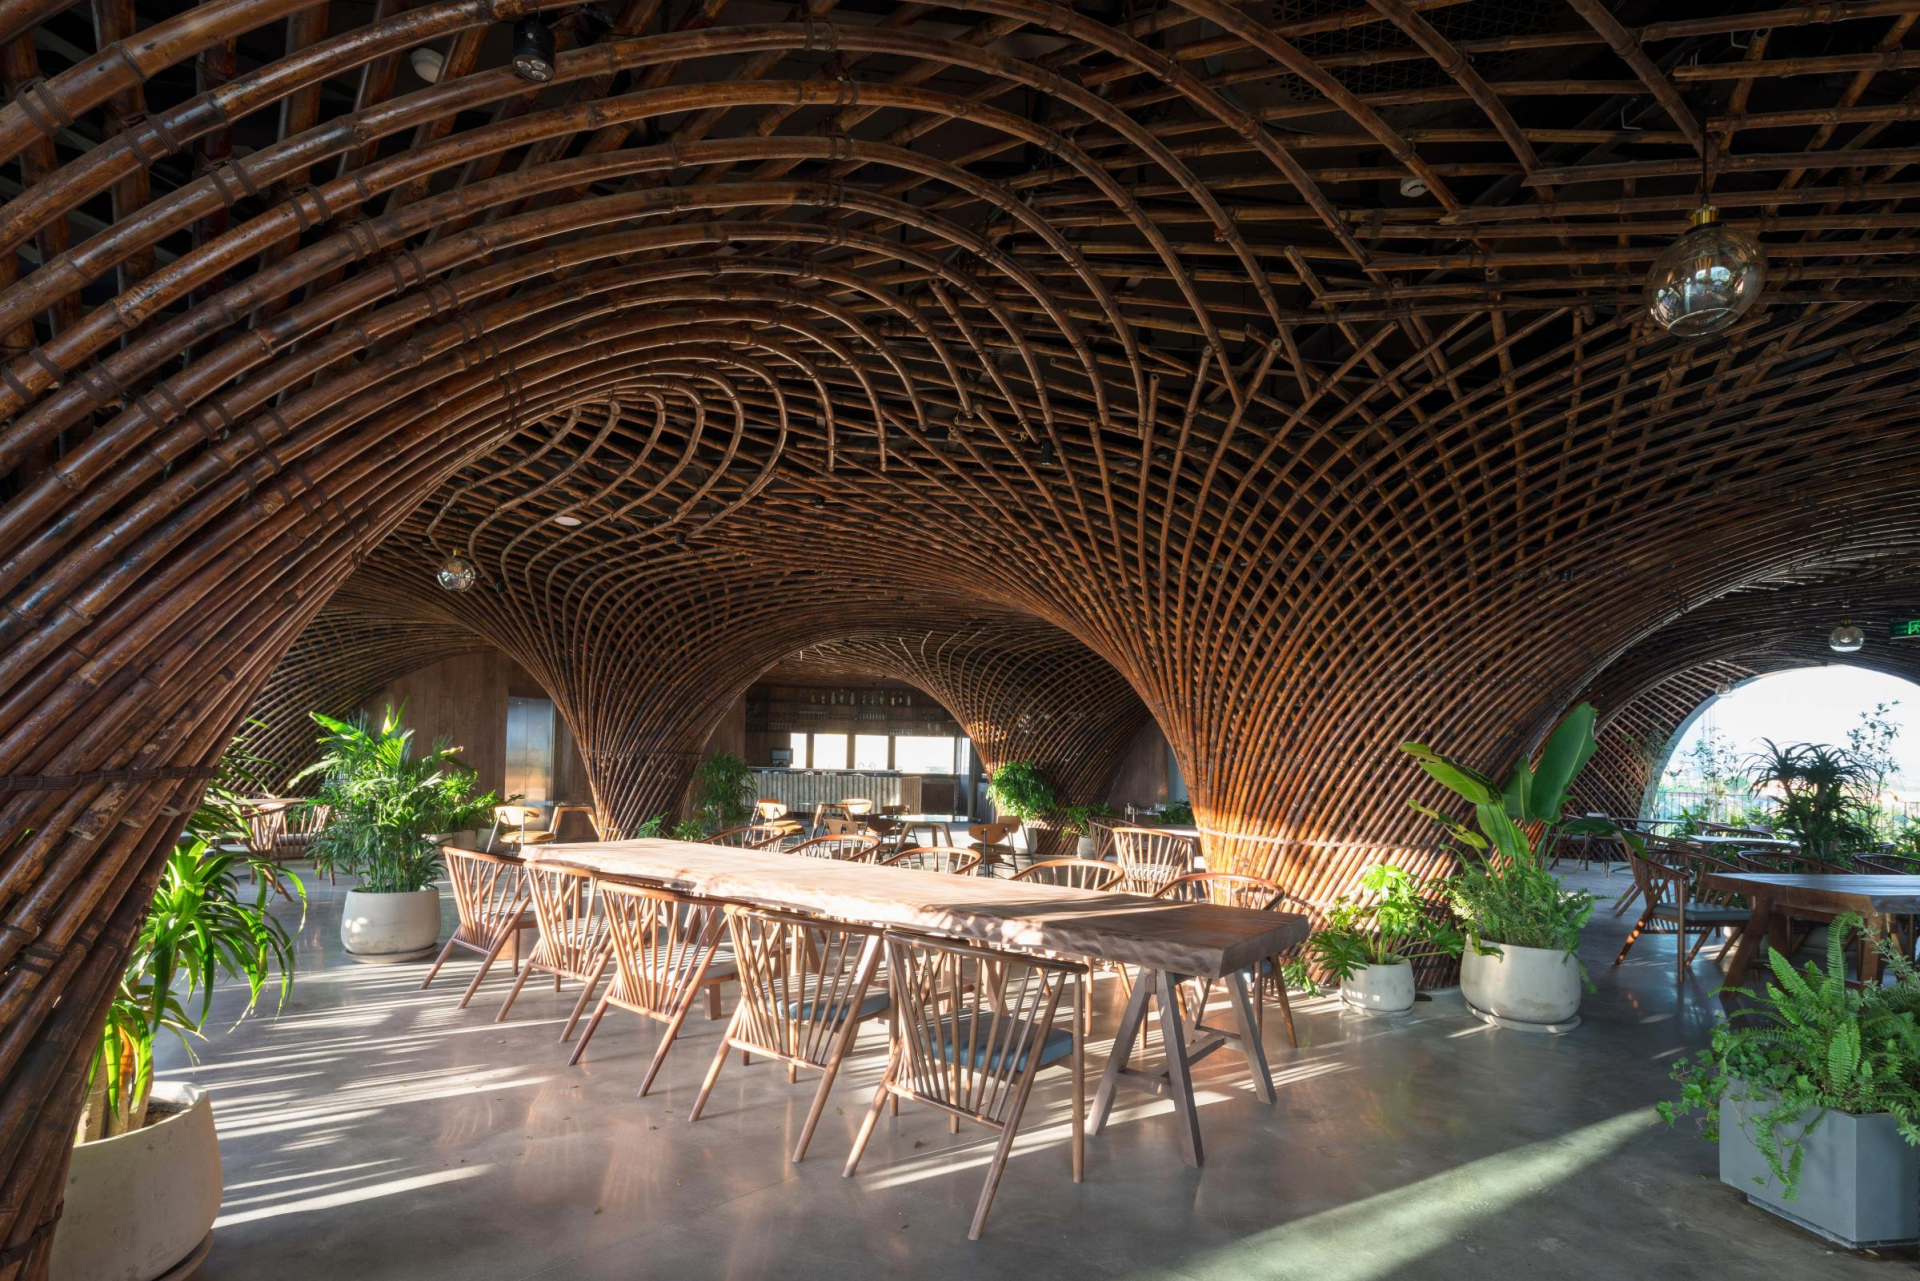 Coffee shop in Vietnam wins int'l architecture award